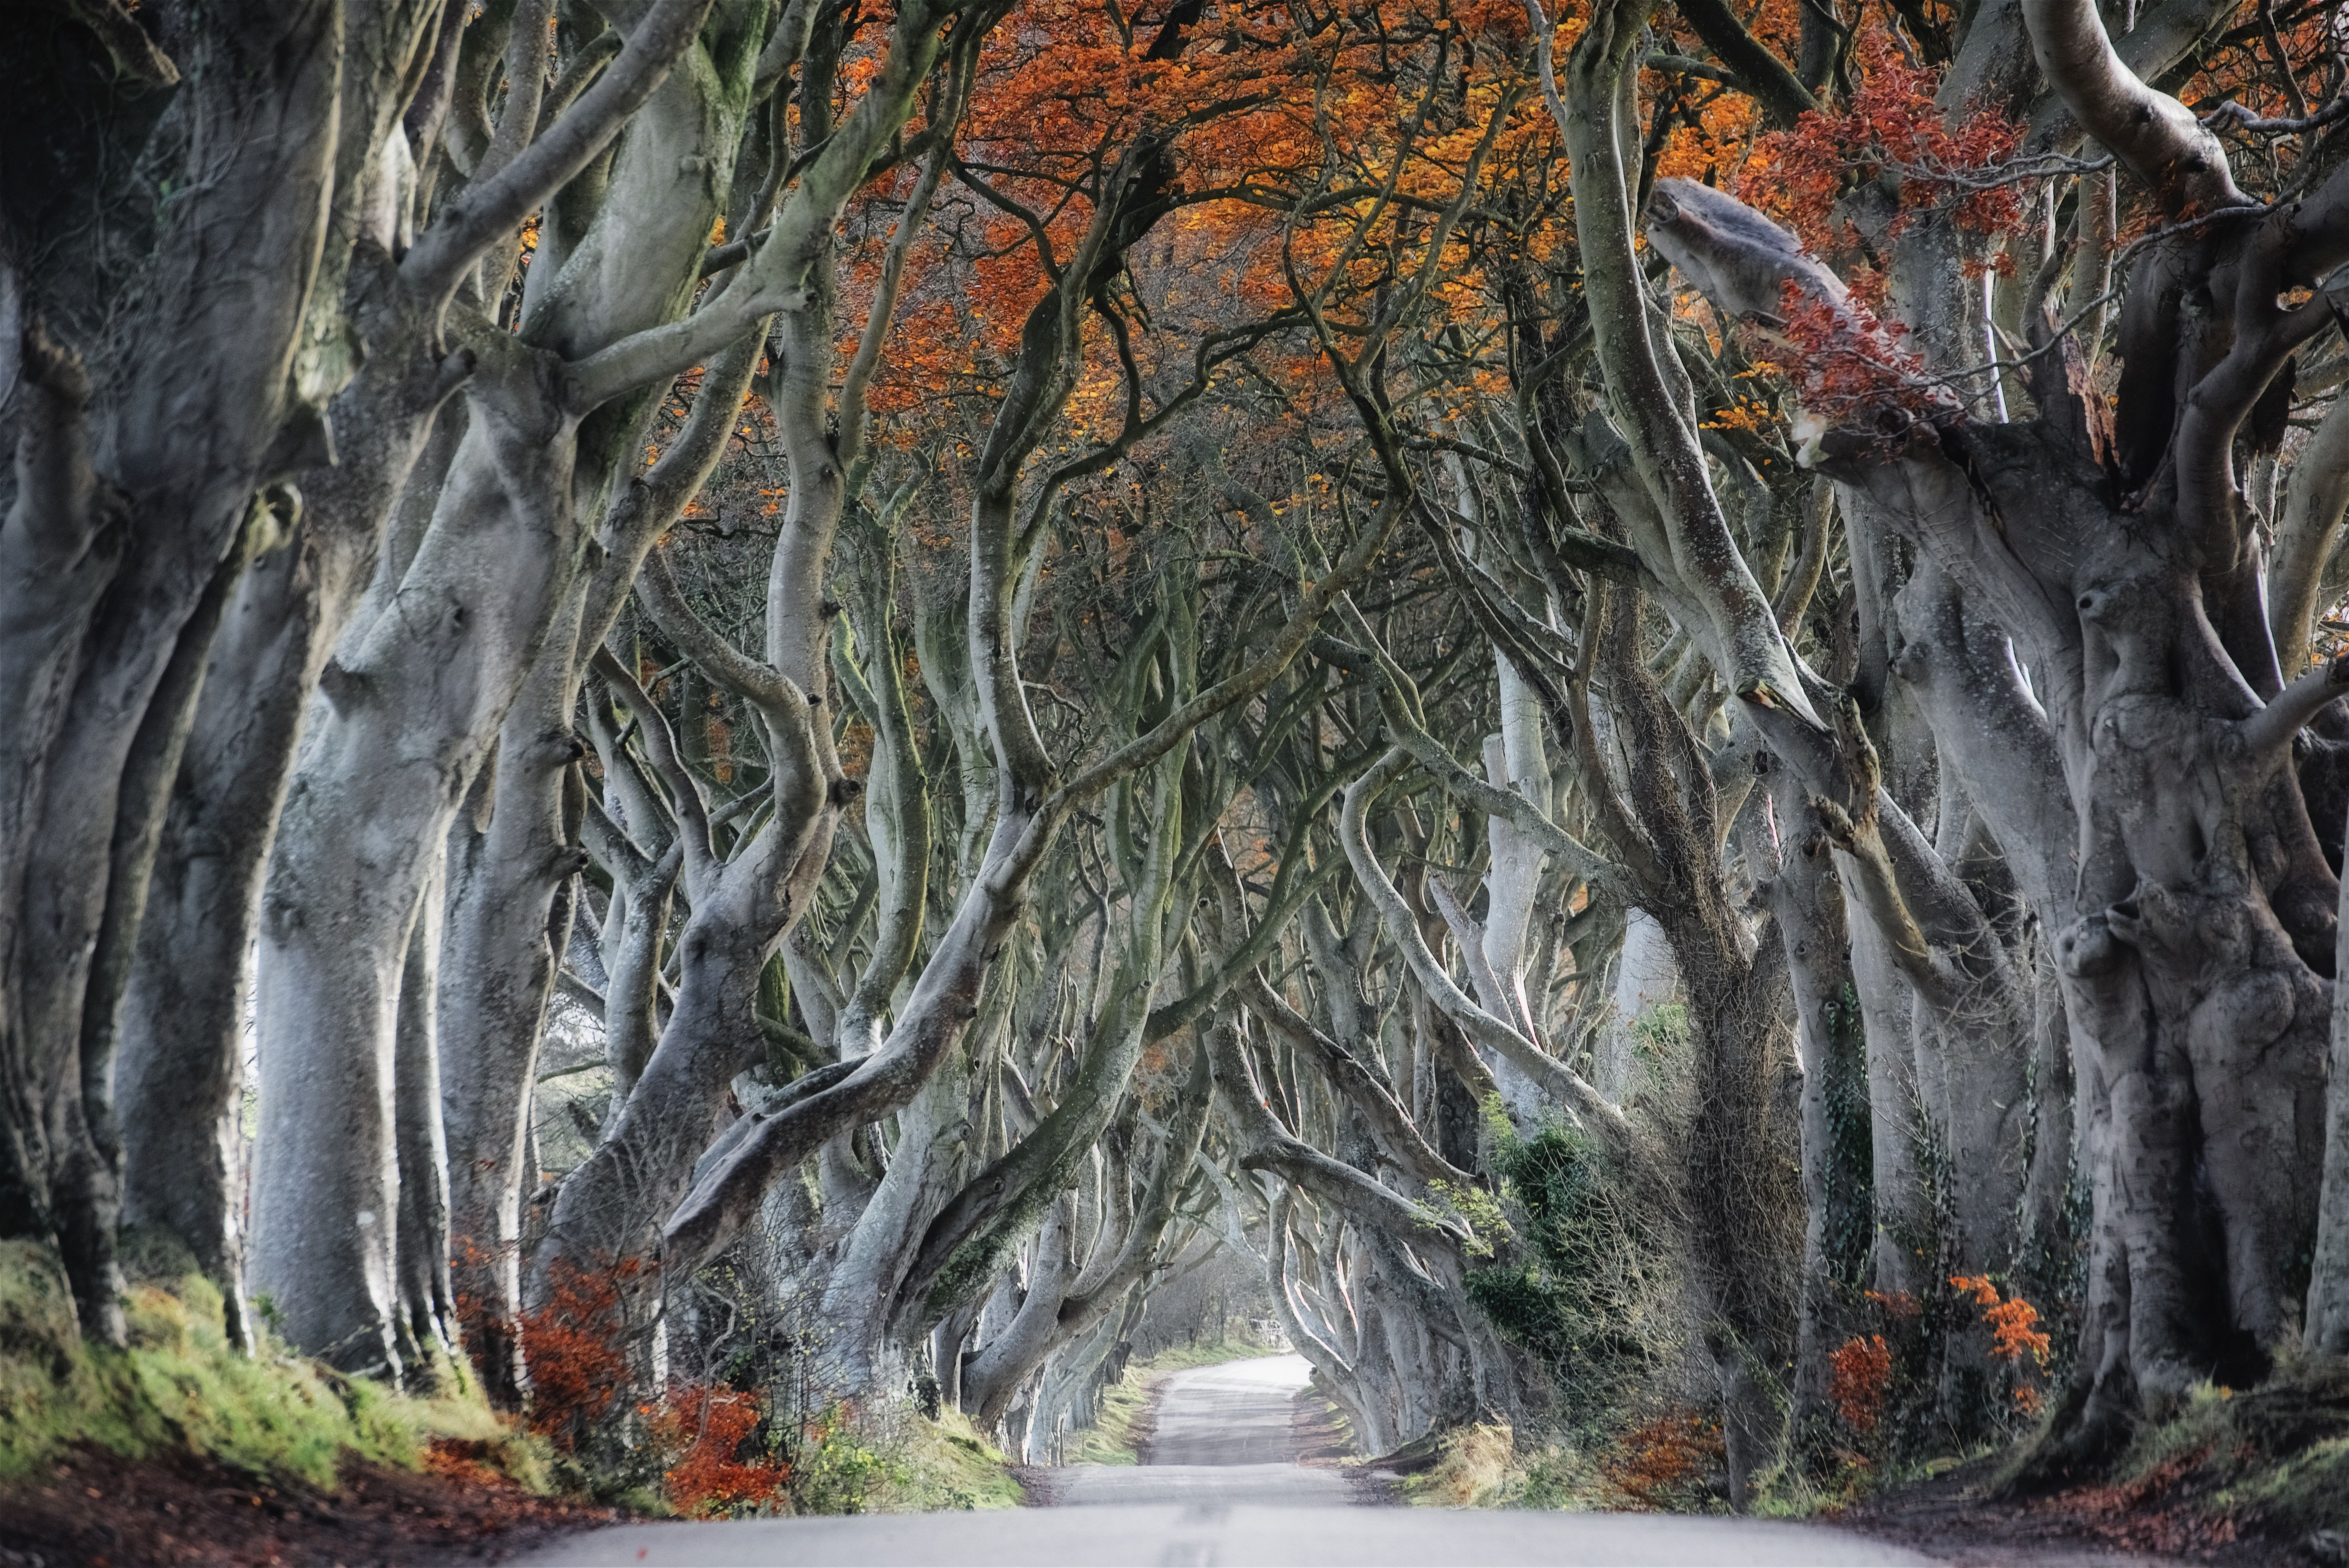 The dark hedges in Autumn United Kingdom [OC][5847 3904